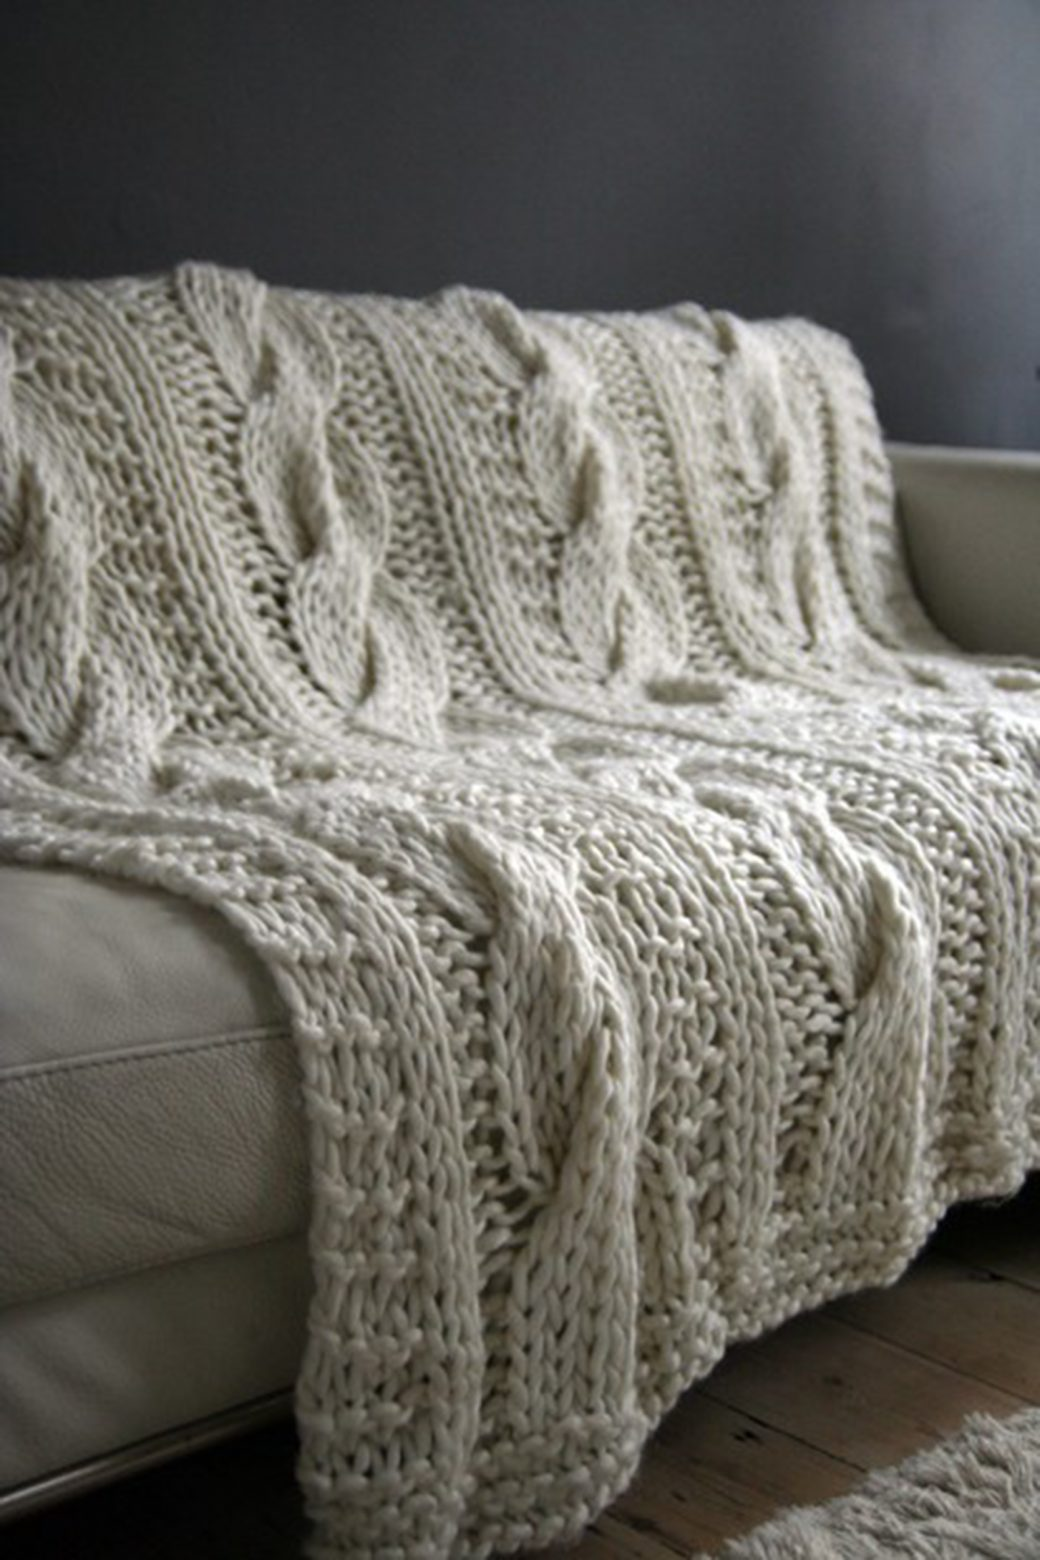 Chunky Cable Knit Throw Rug Natural – Title Online : Title Online